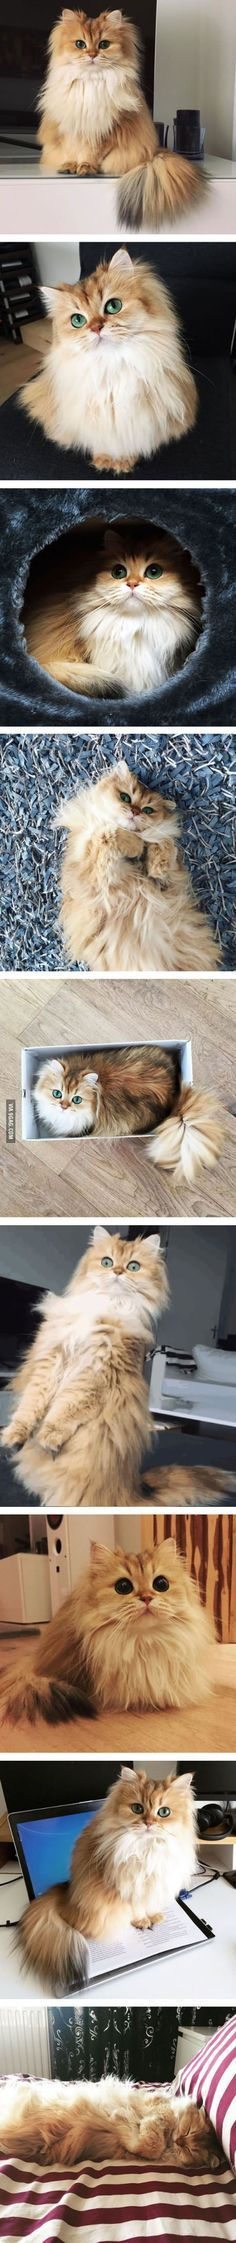 This Is Smoothie, The World's Most Photogenic Cat <~~and better looking…